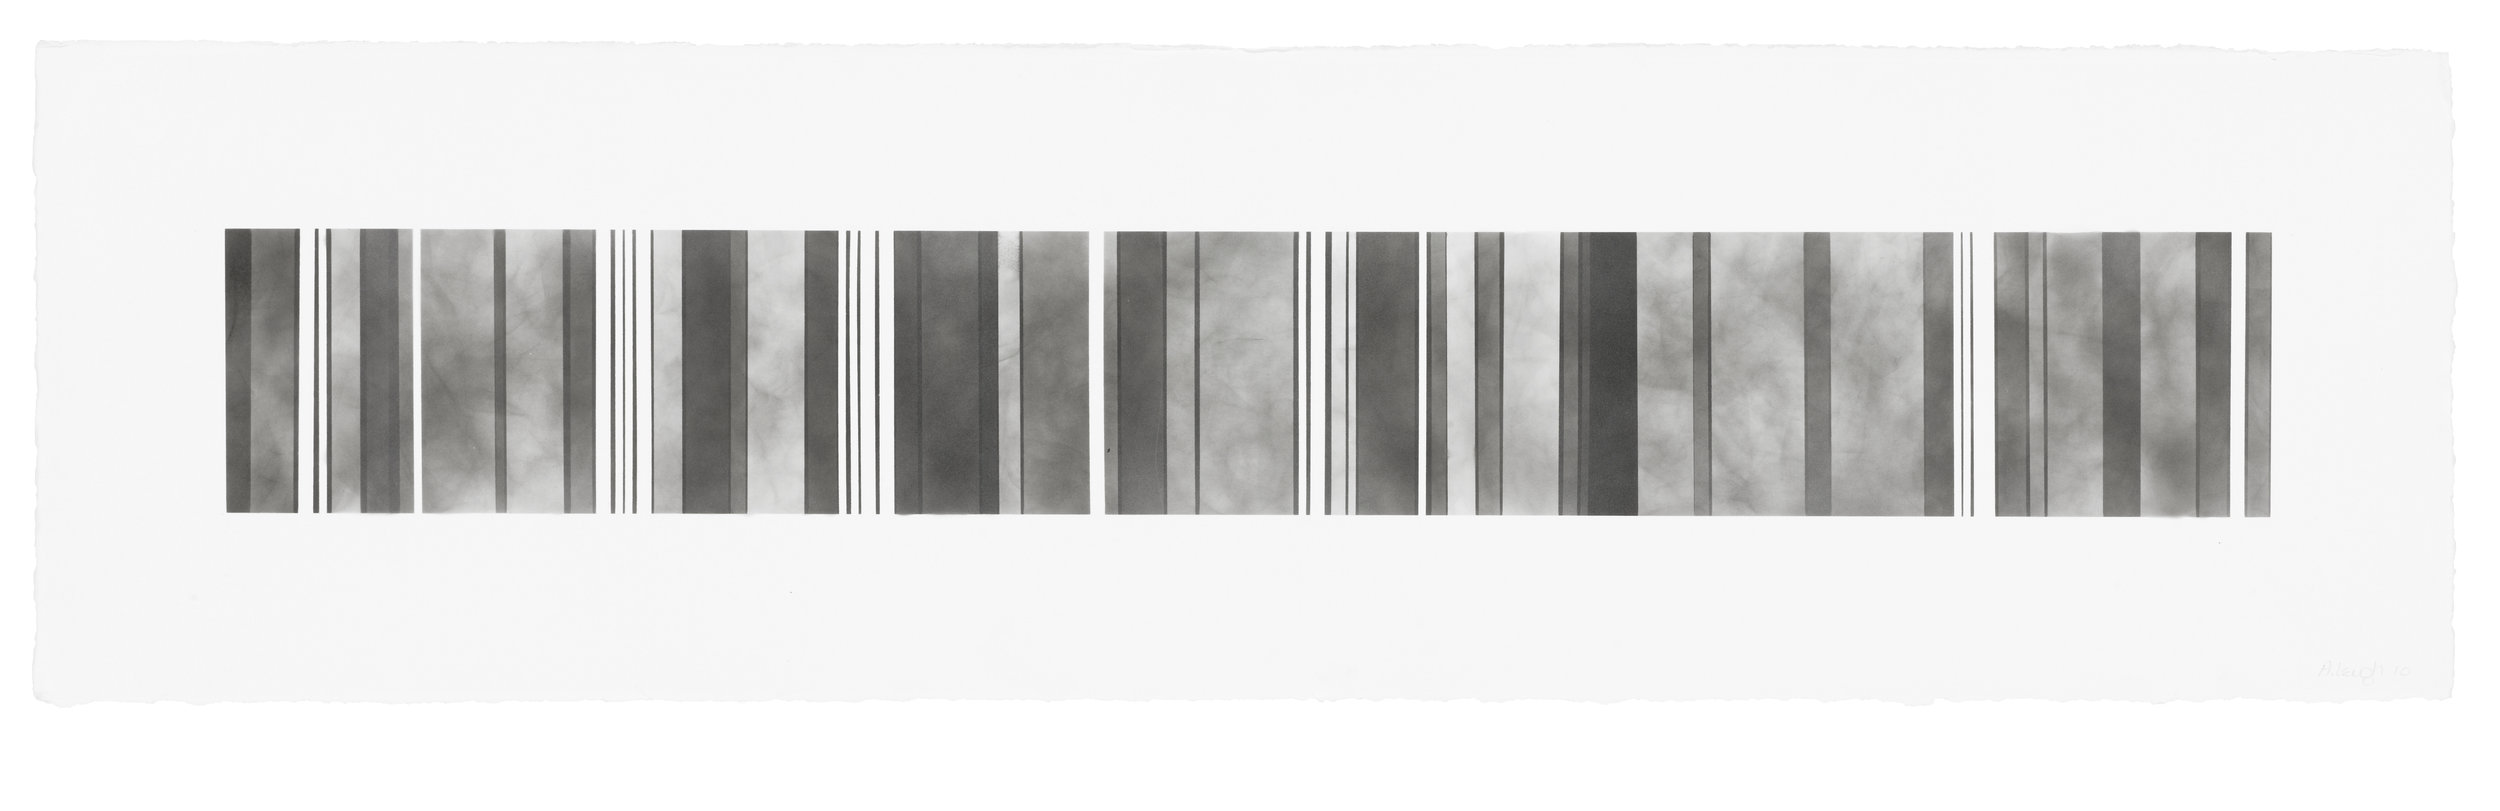 Barcode Series B 13, smoke on  paper, 11 by 40.5 inches, 2013